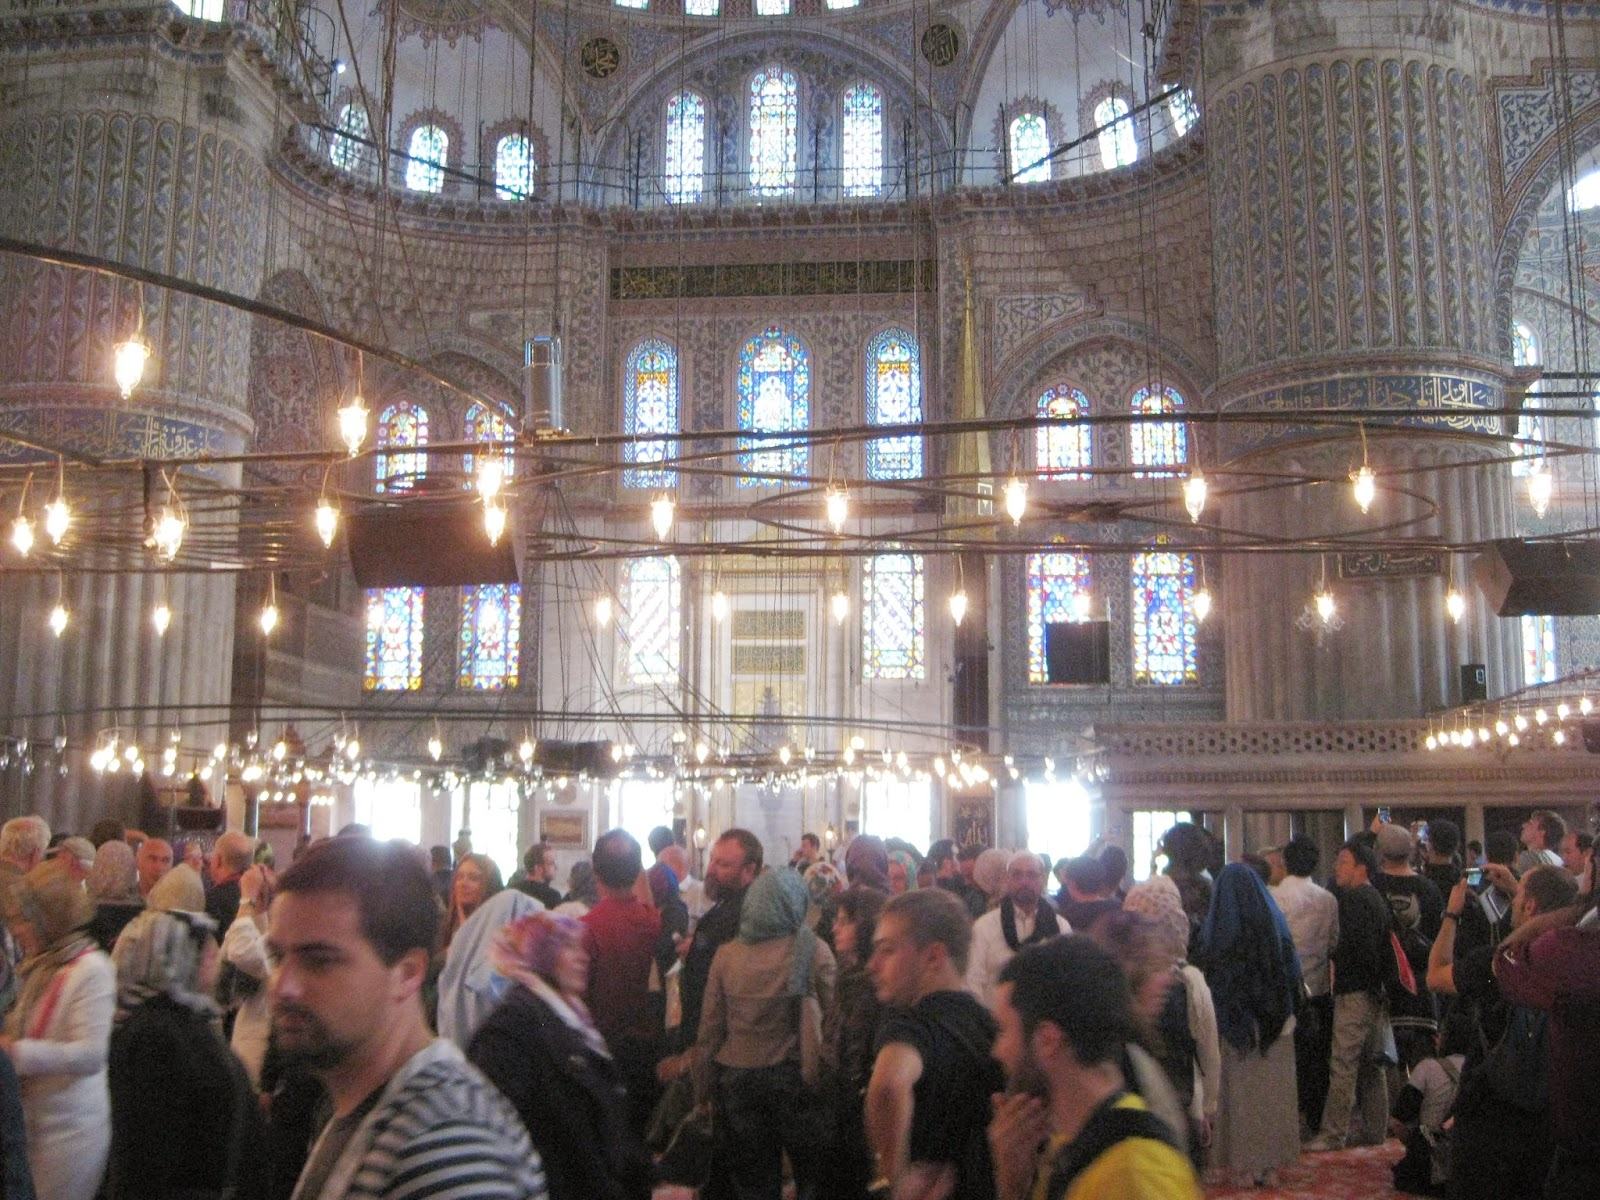 Istanbul - There's certainly a crowd of visitors